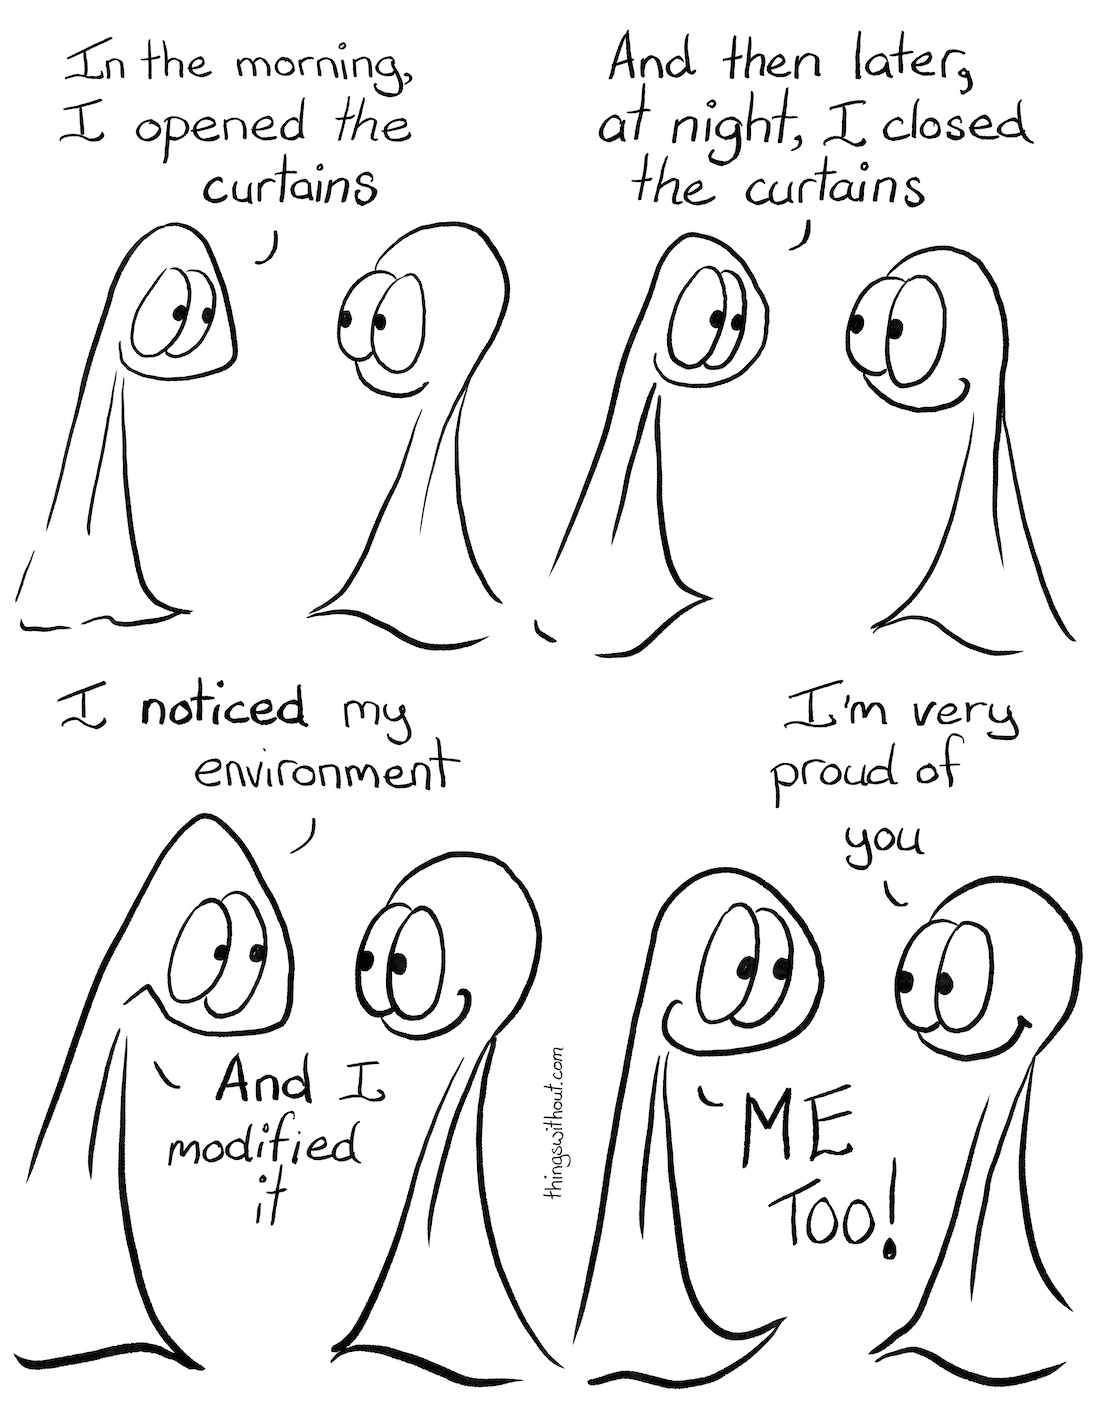 Modify Your Environment Comic Transcript Thing 1 and Thing 2 are in conversation. They're both smiling.Thing 1: In the morning, I opened the curtains. Thing 1: And then later, at night, I closed the curtains. Thing 1 has a huge grin on their face.Thing 1: I NOTICED my environment.Thing 1: AND I modified it. Thing 2: I'm very proud of you.Thing 1: ME TOO!